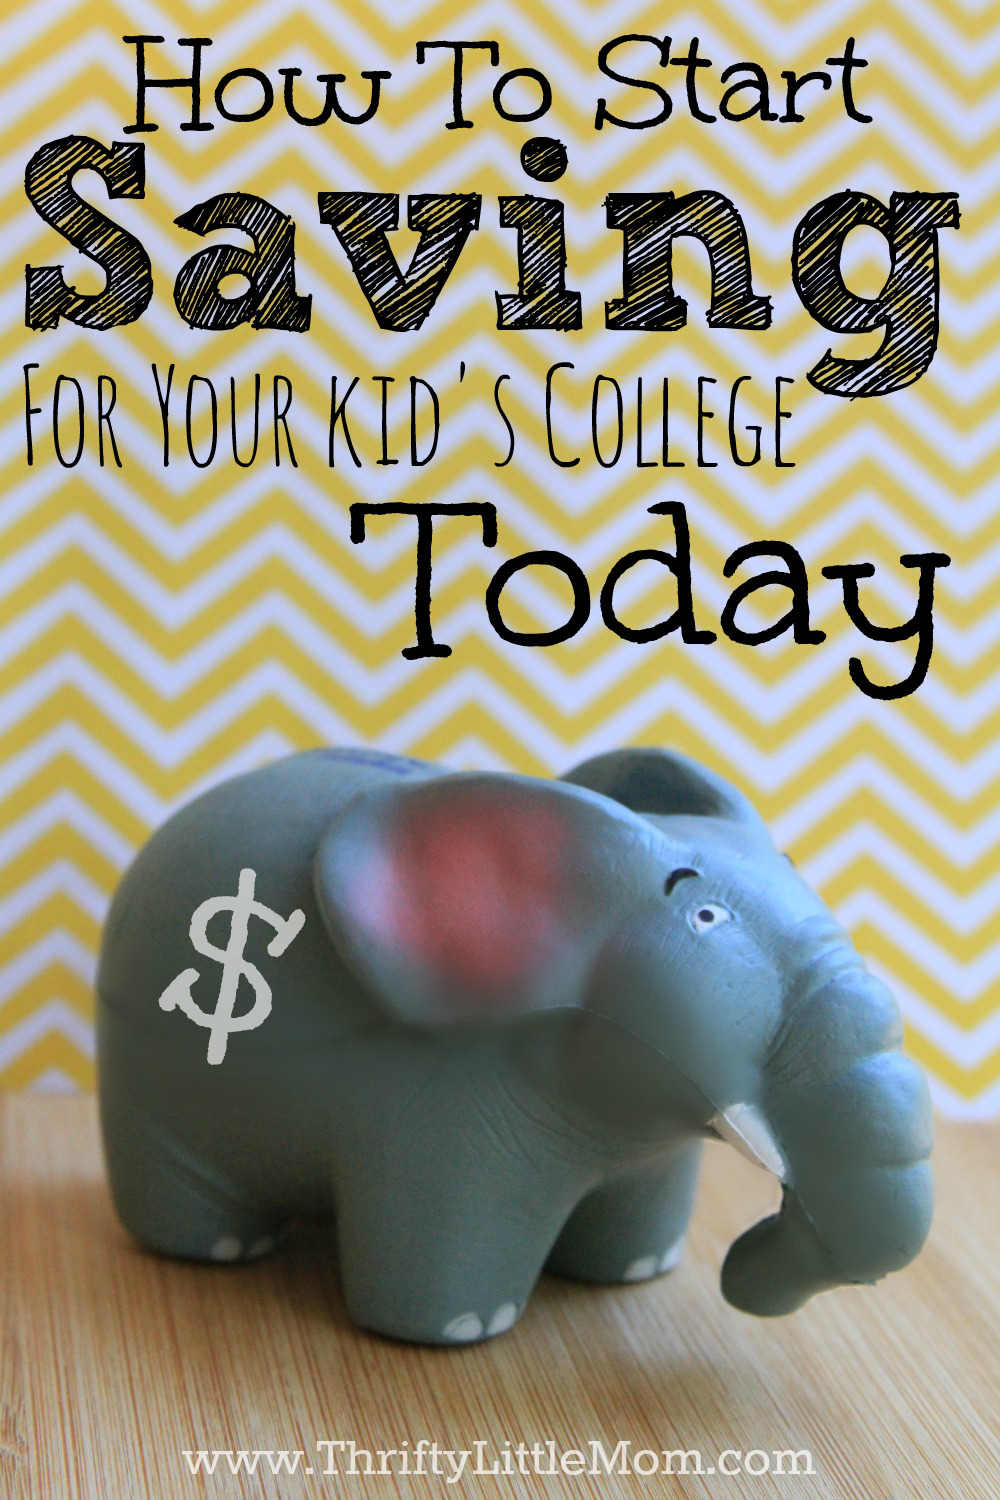 How To Start Saving For Your Kid's College Today